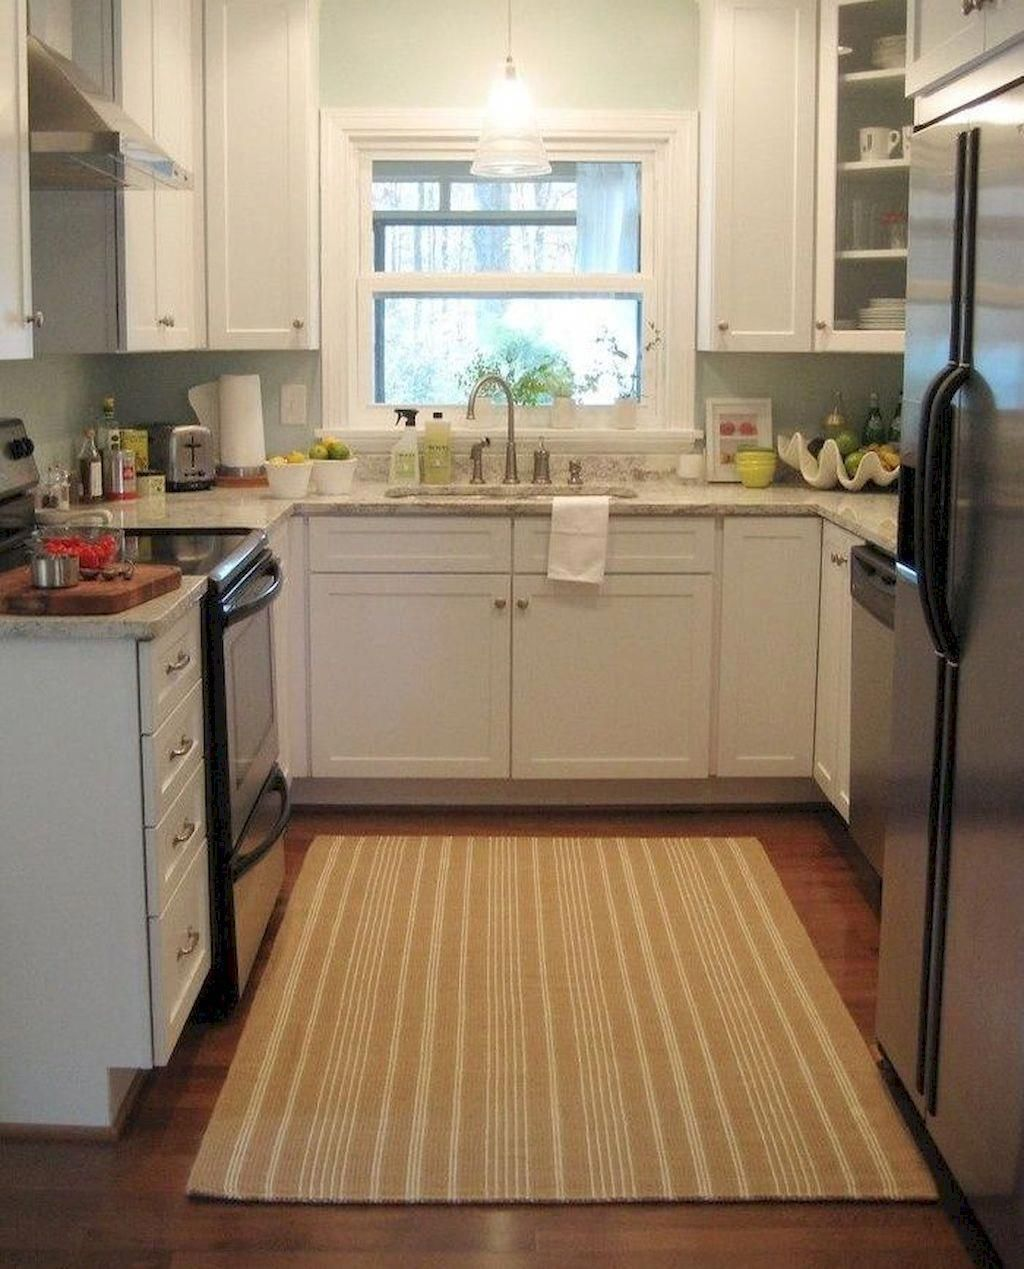 8 Tiny House Kitchen Ideas To Help You Make The Most Of Your Small